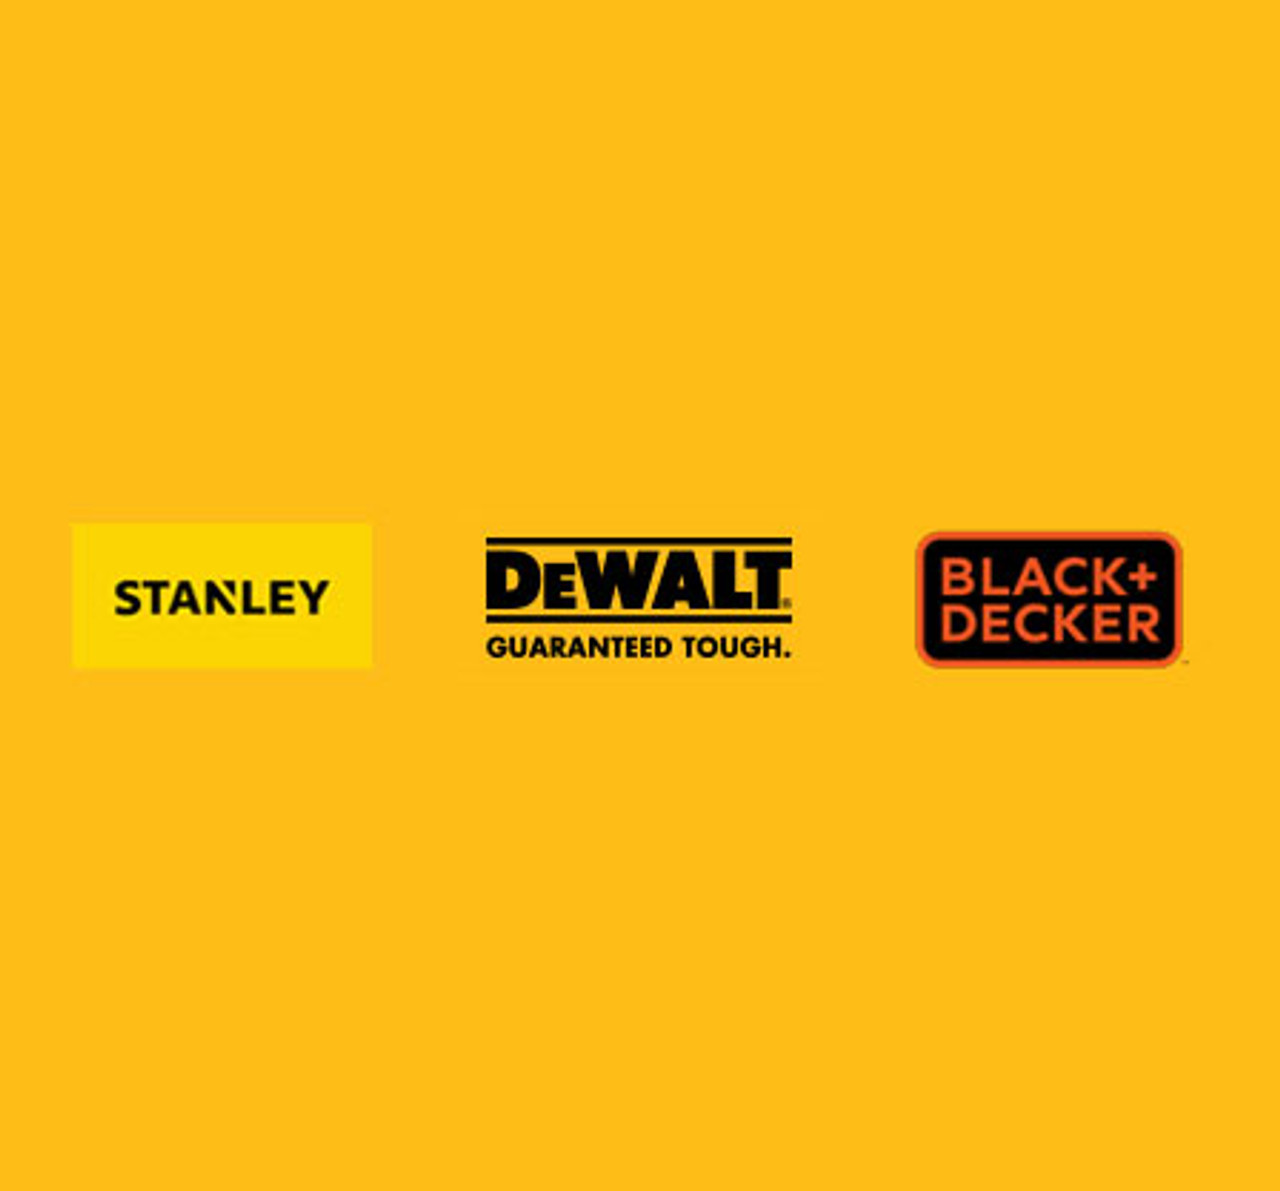 Pleasant 1004570 23 Filter Stanley Black And Decker Dewalt Alphanode Cool Chair Designs And Ideas Alphanodeonline